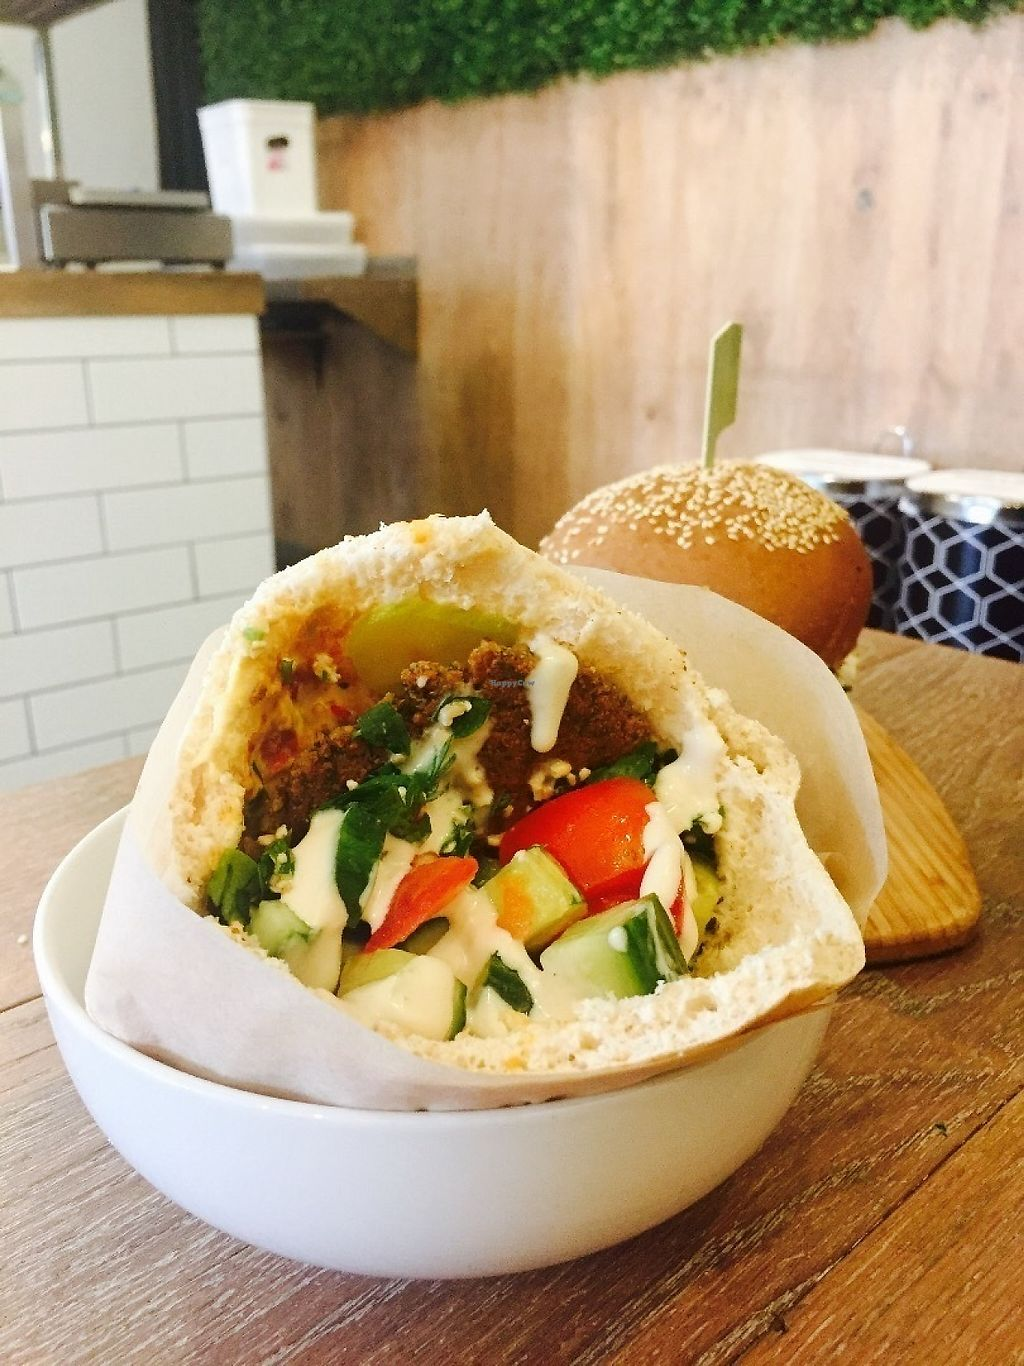 """Photo of Herbivore Eatery  by <a href=""""/members/profile/karlaess"""">karlaess</a> <br/>Middle Eastern Full Falafel pocket <br/> May 6, 2017  - <a href='/contact/abuse/image/84024/256160'>Report</a>"""